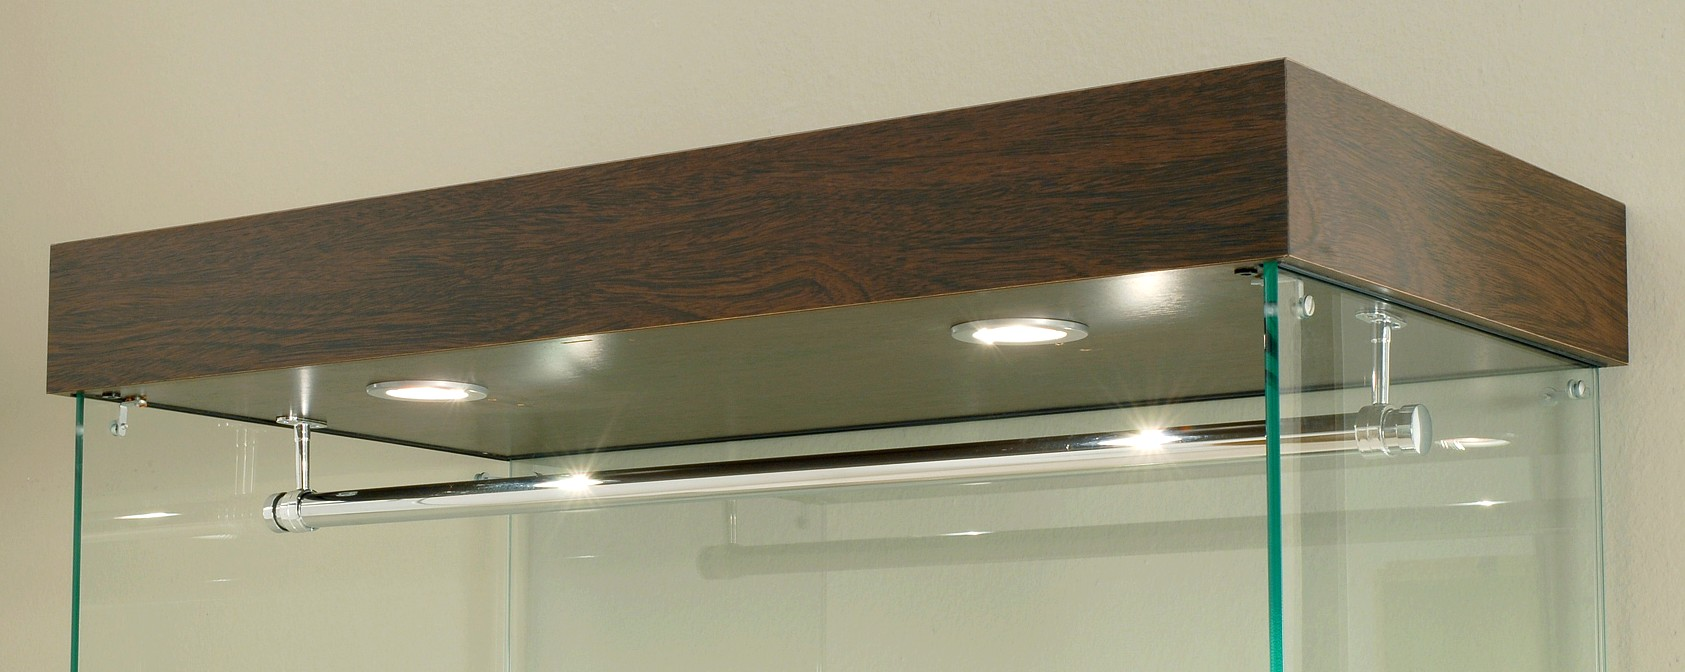 Barra Soffitto: Neon barra led applique soffitto plafoniera smd. Lampade filo led barra soffitto ...